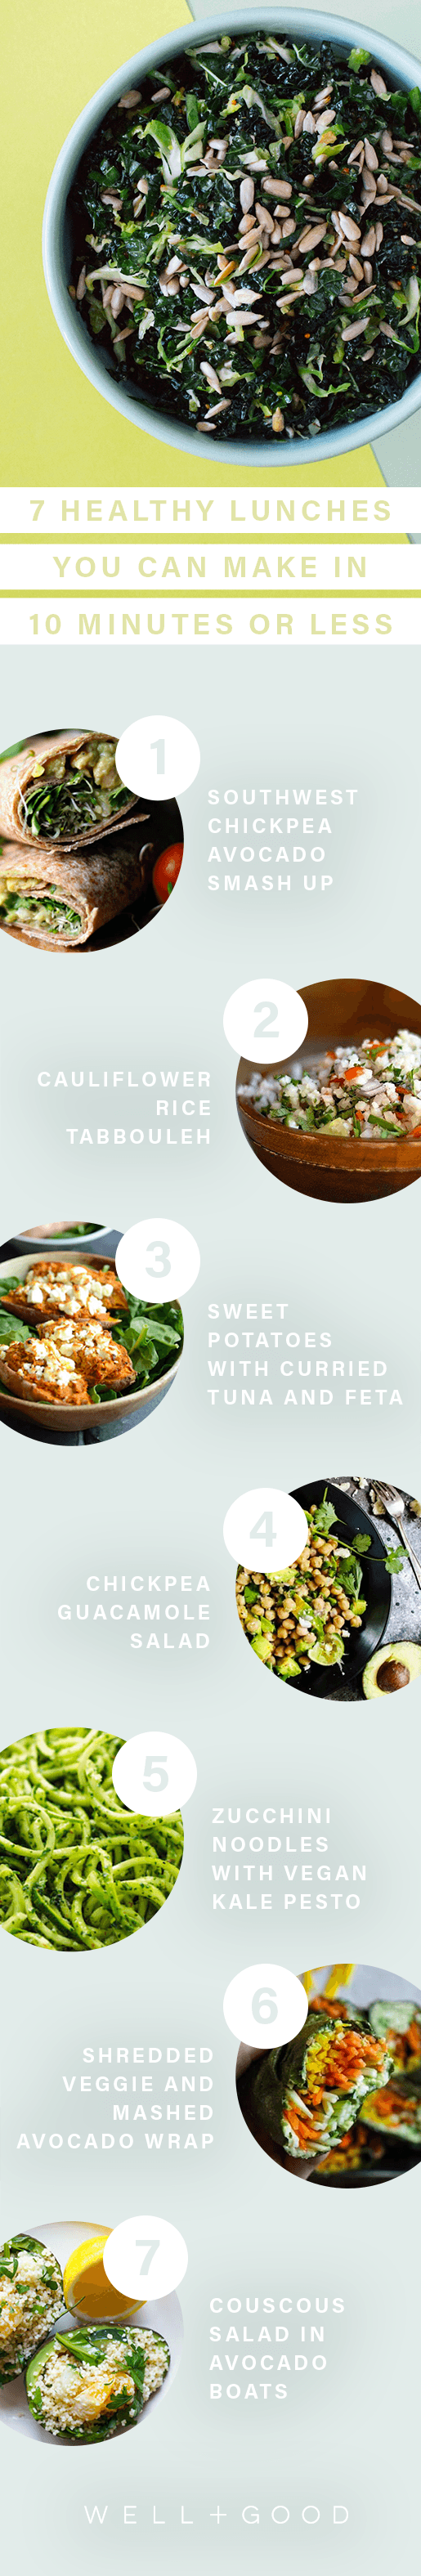 Easy to make 10-minute healthy lunch recipes | Well+Good